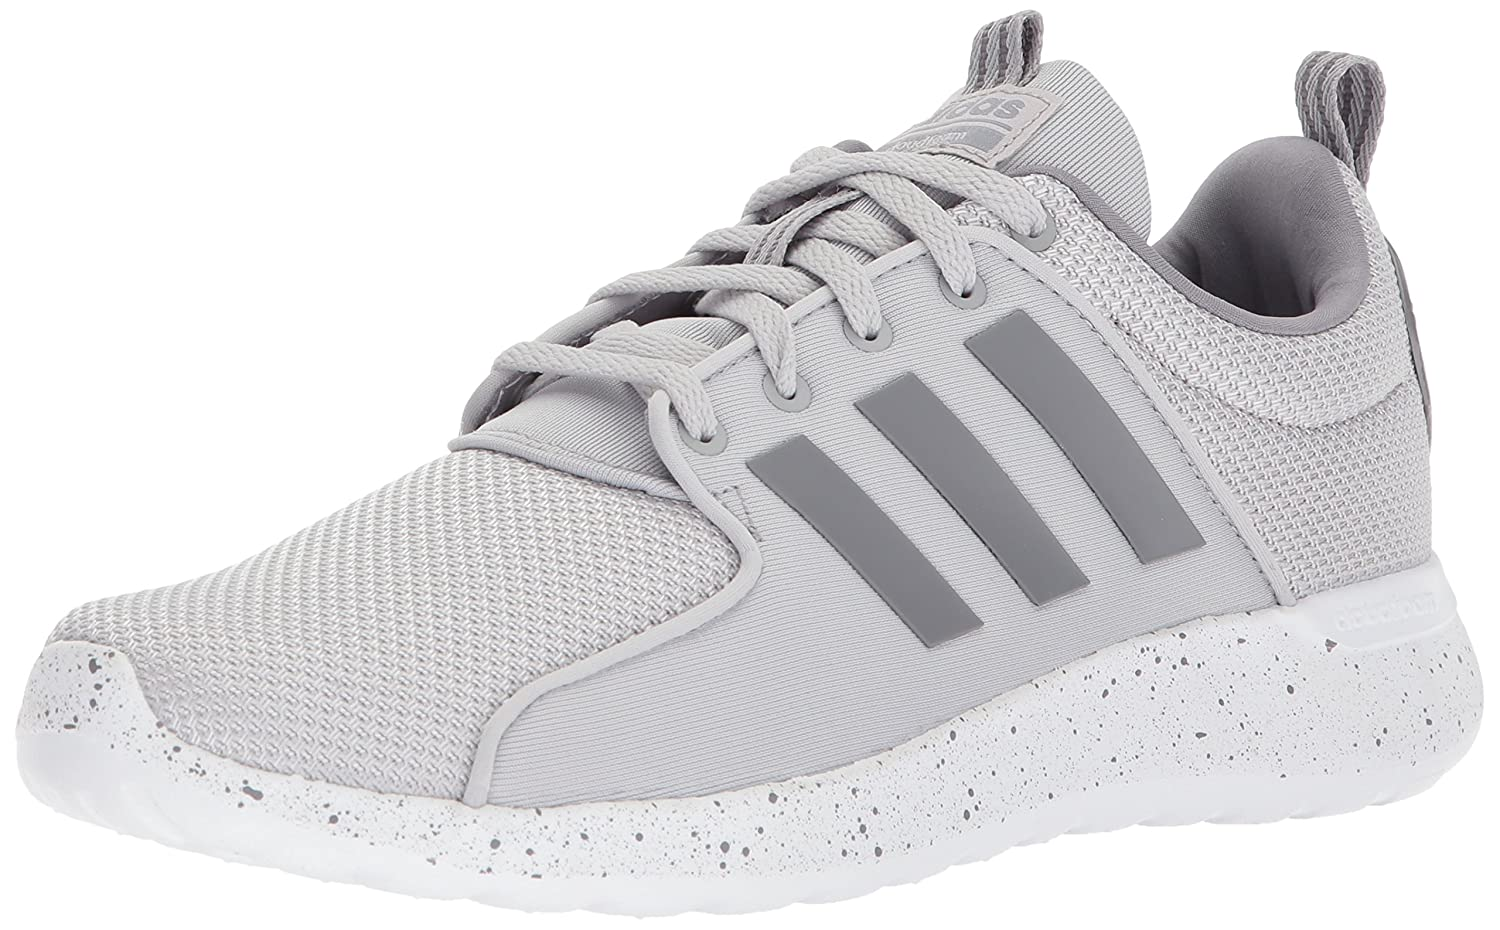 online store 0844e 1c1fb Adidas Mens CF Lite Racer Running Shoes Grey Two Grey Three White Online  Shop